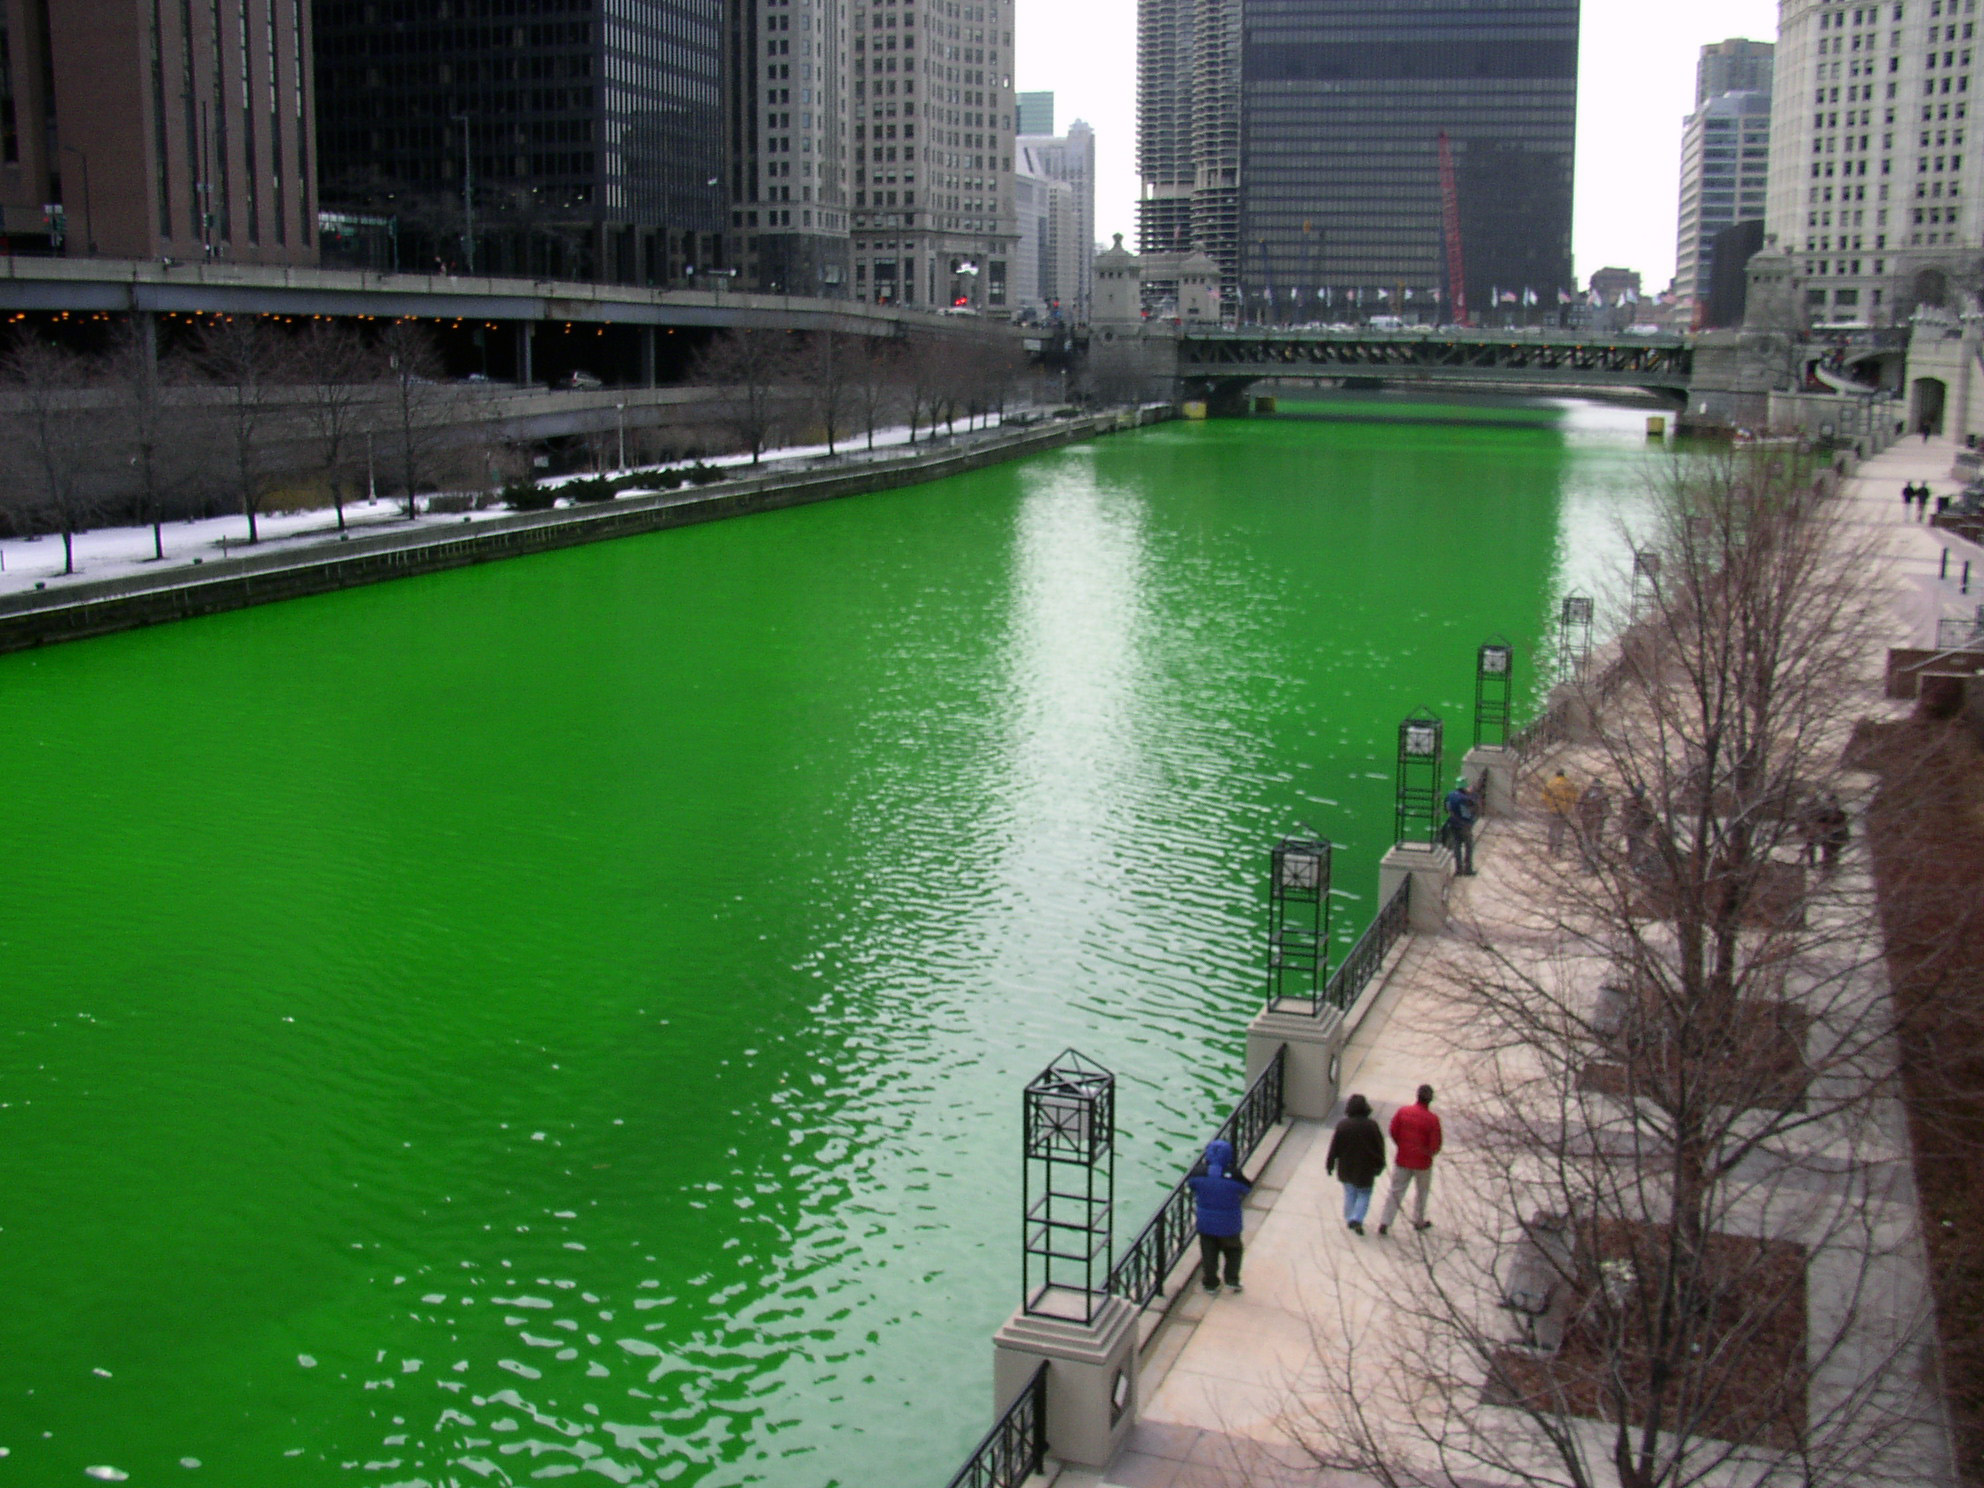 https://i1.wp.com/upload.wikimedia.org/wikipedia/commons/b/b6/Chicago_River_dyed_green%2C_focus_on_river.jpg